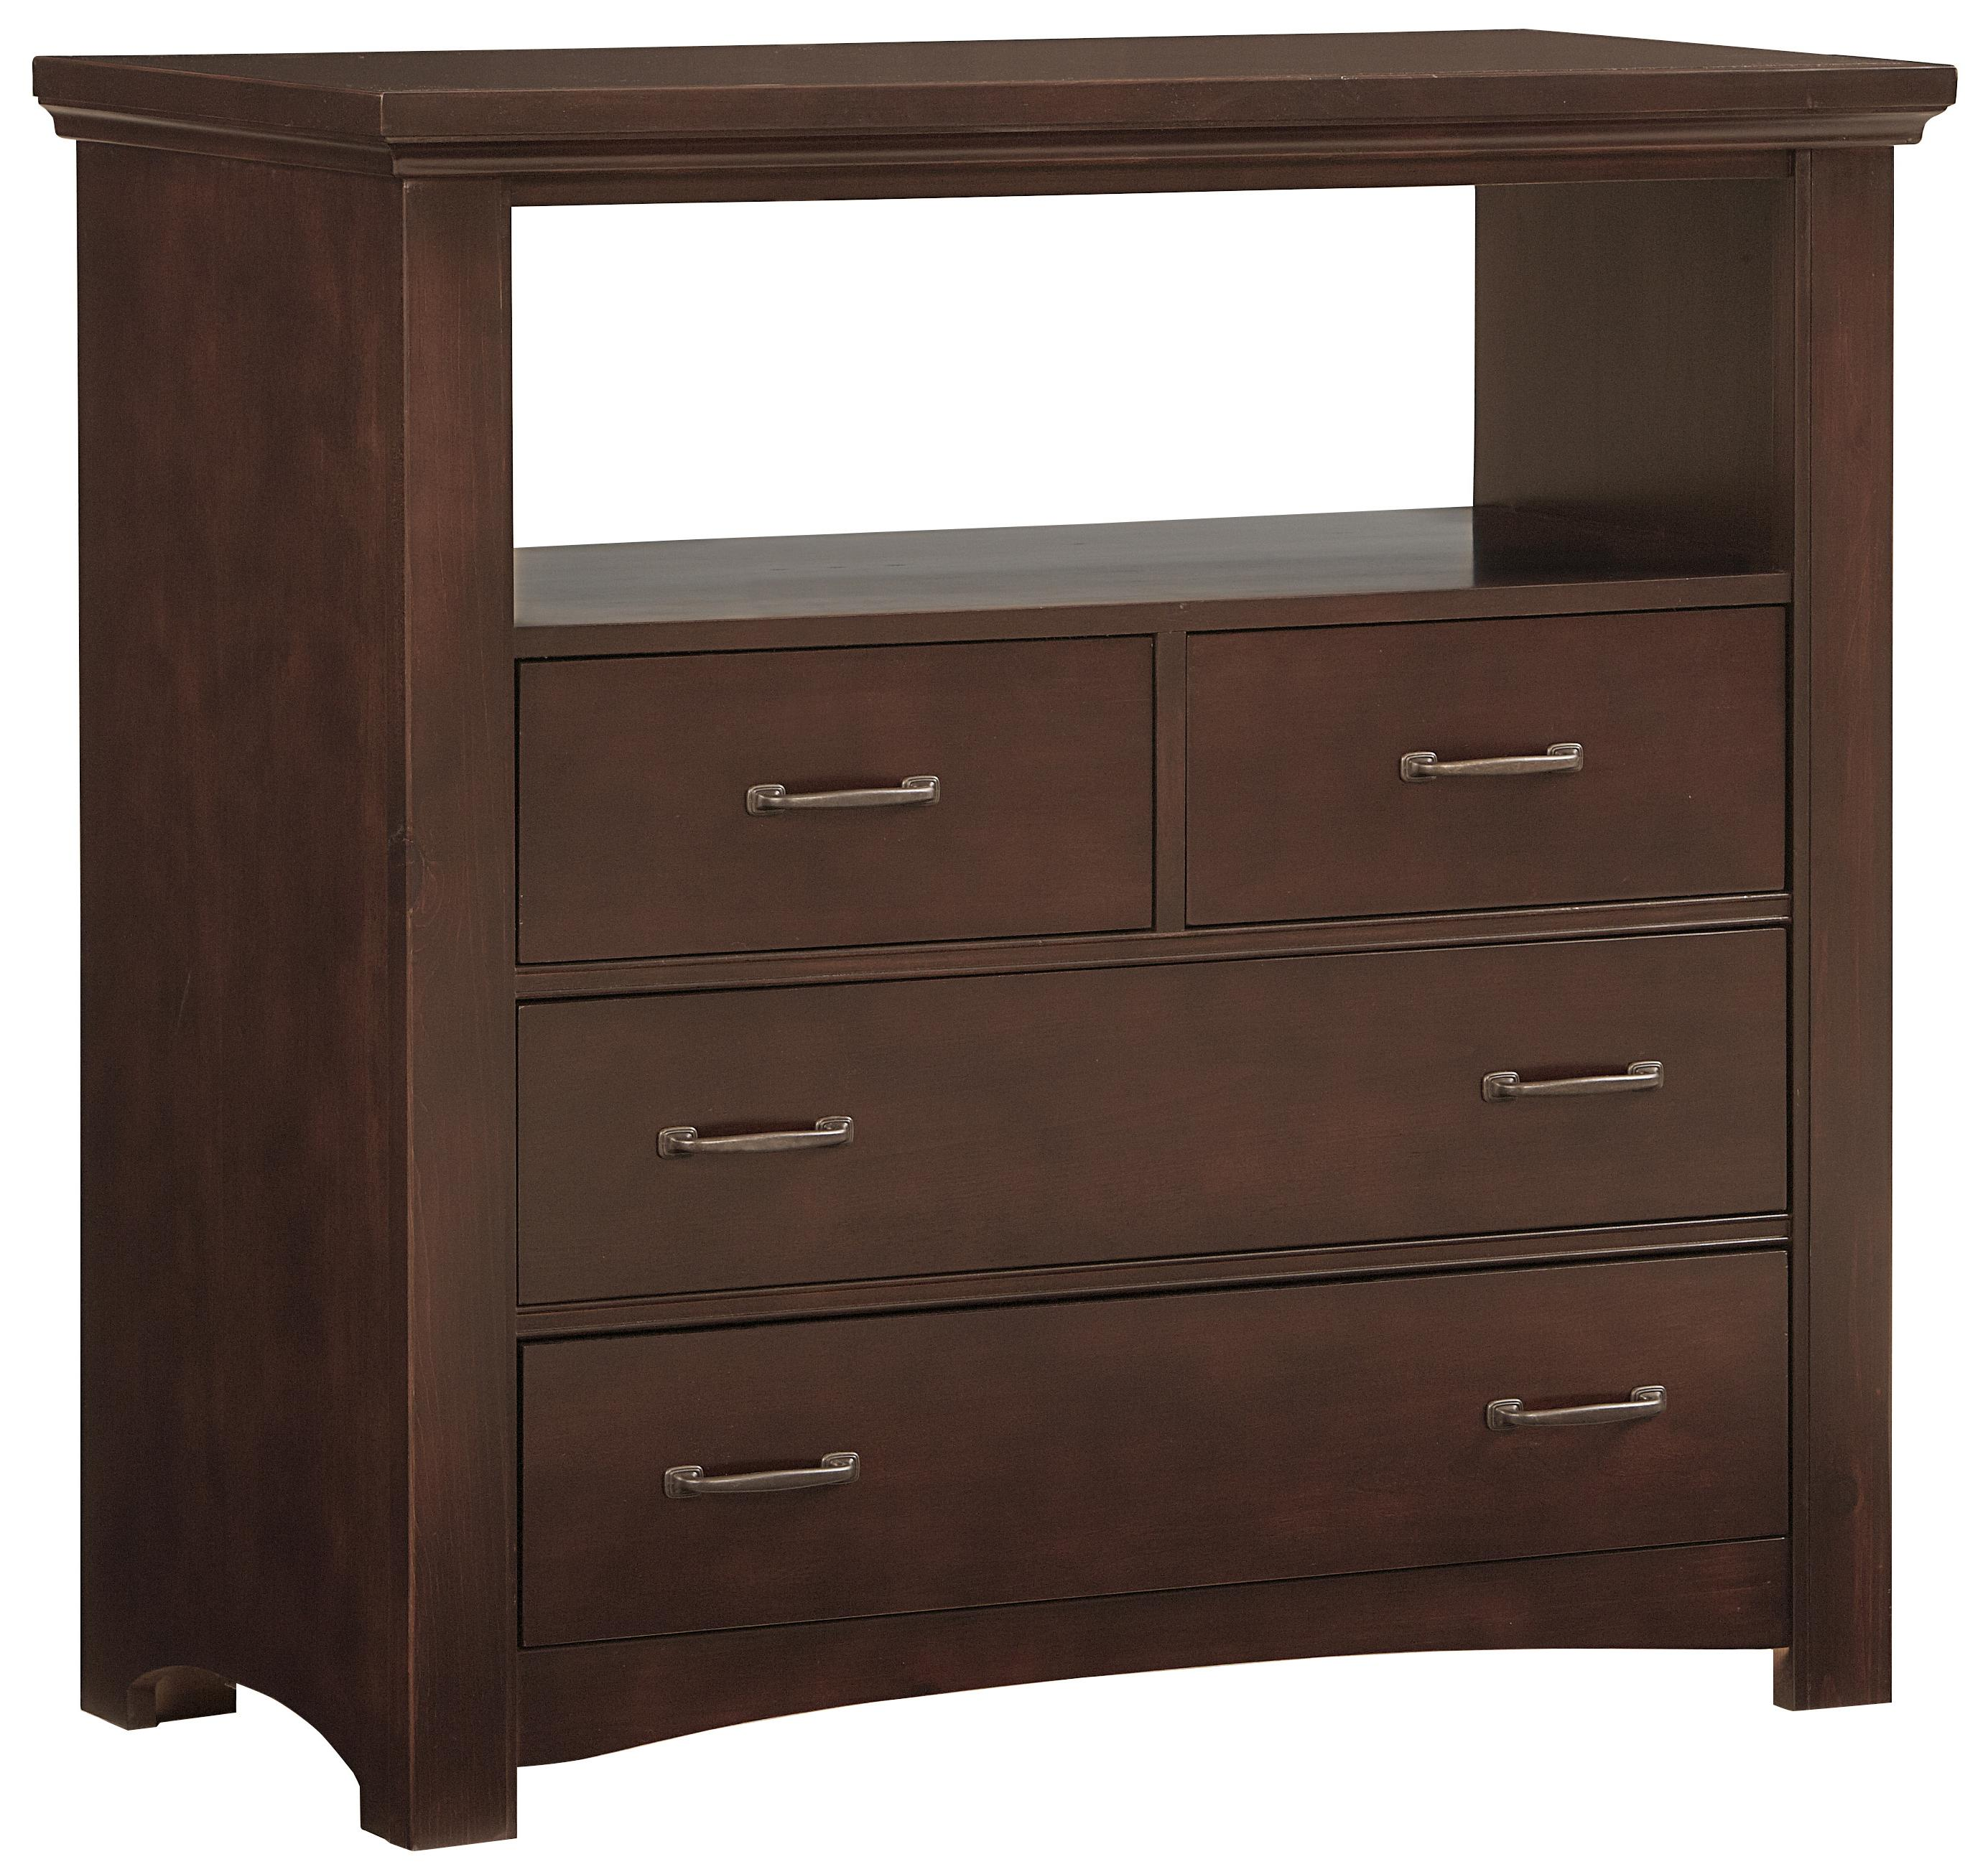 vaughan bassett transitions casual contemporary media chest 4 drawers belfort furniture. Black Bedroom Furniture Sets. Home Design Ideas